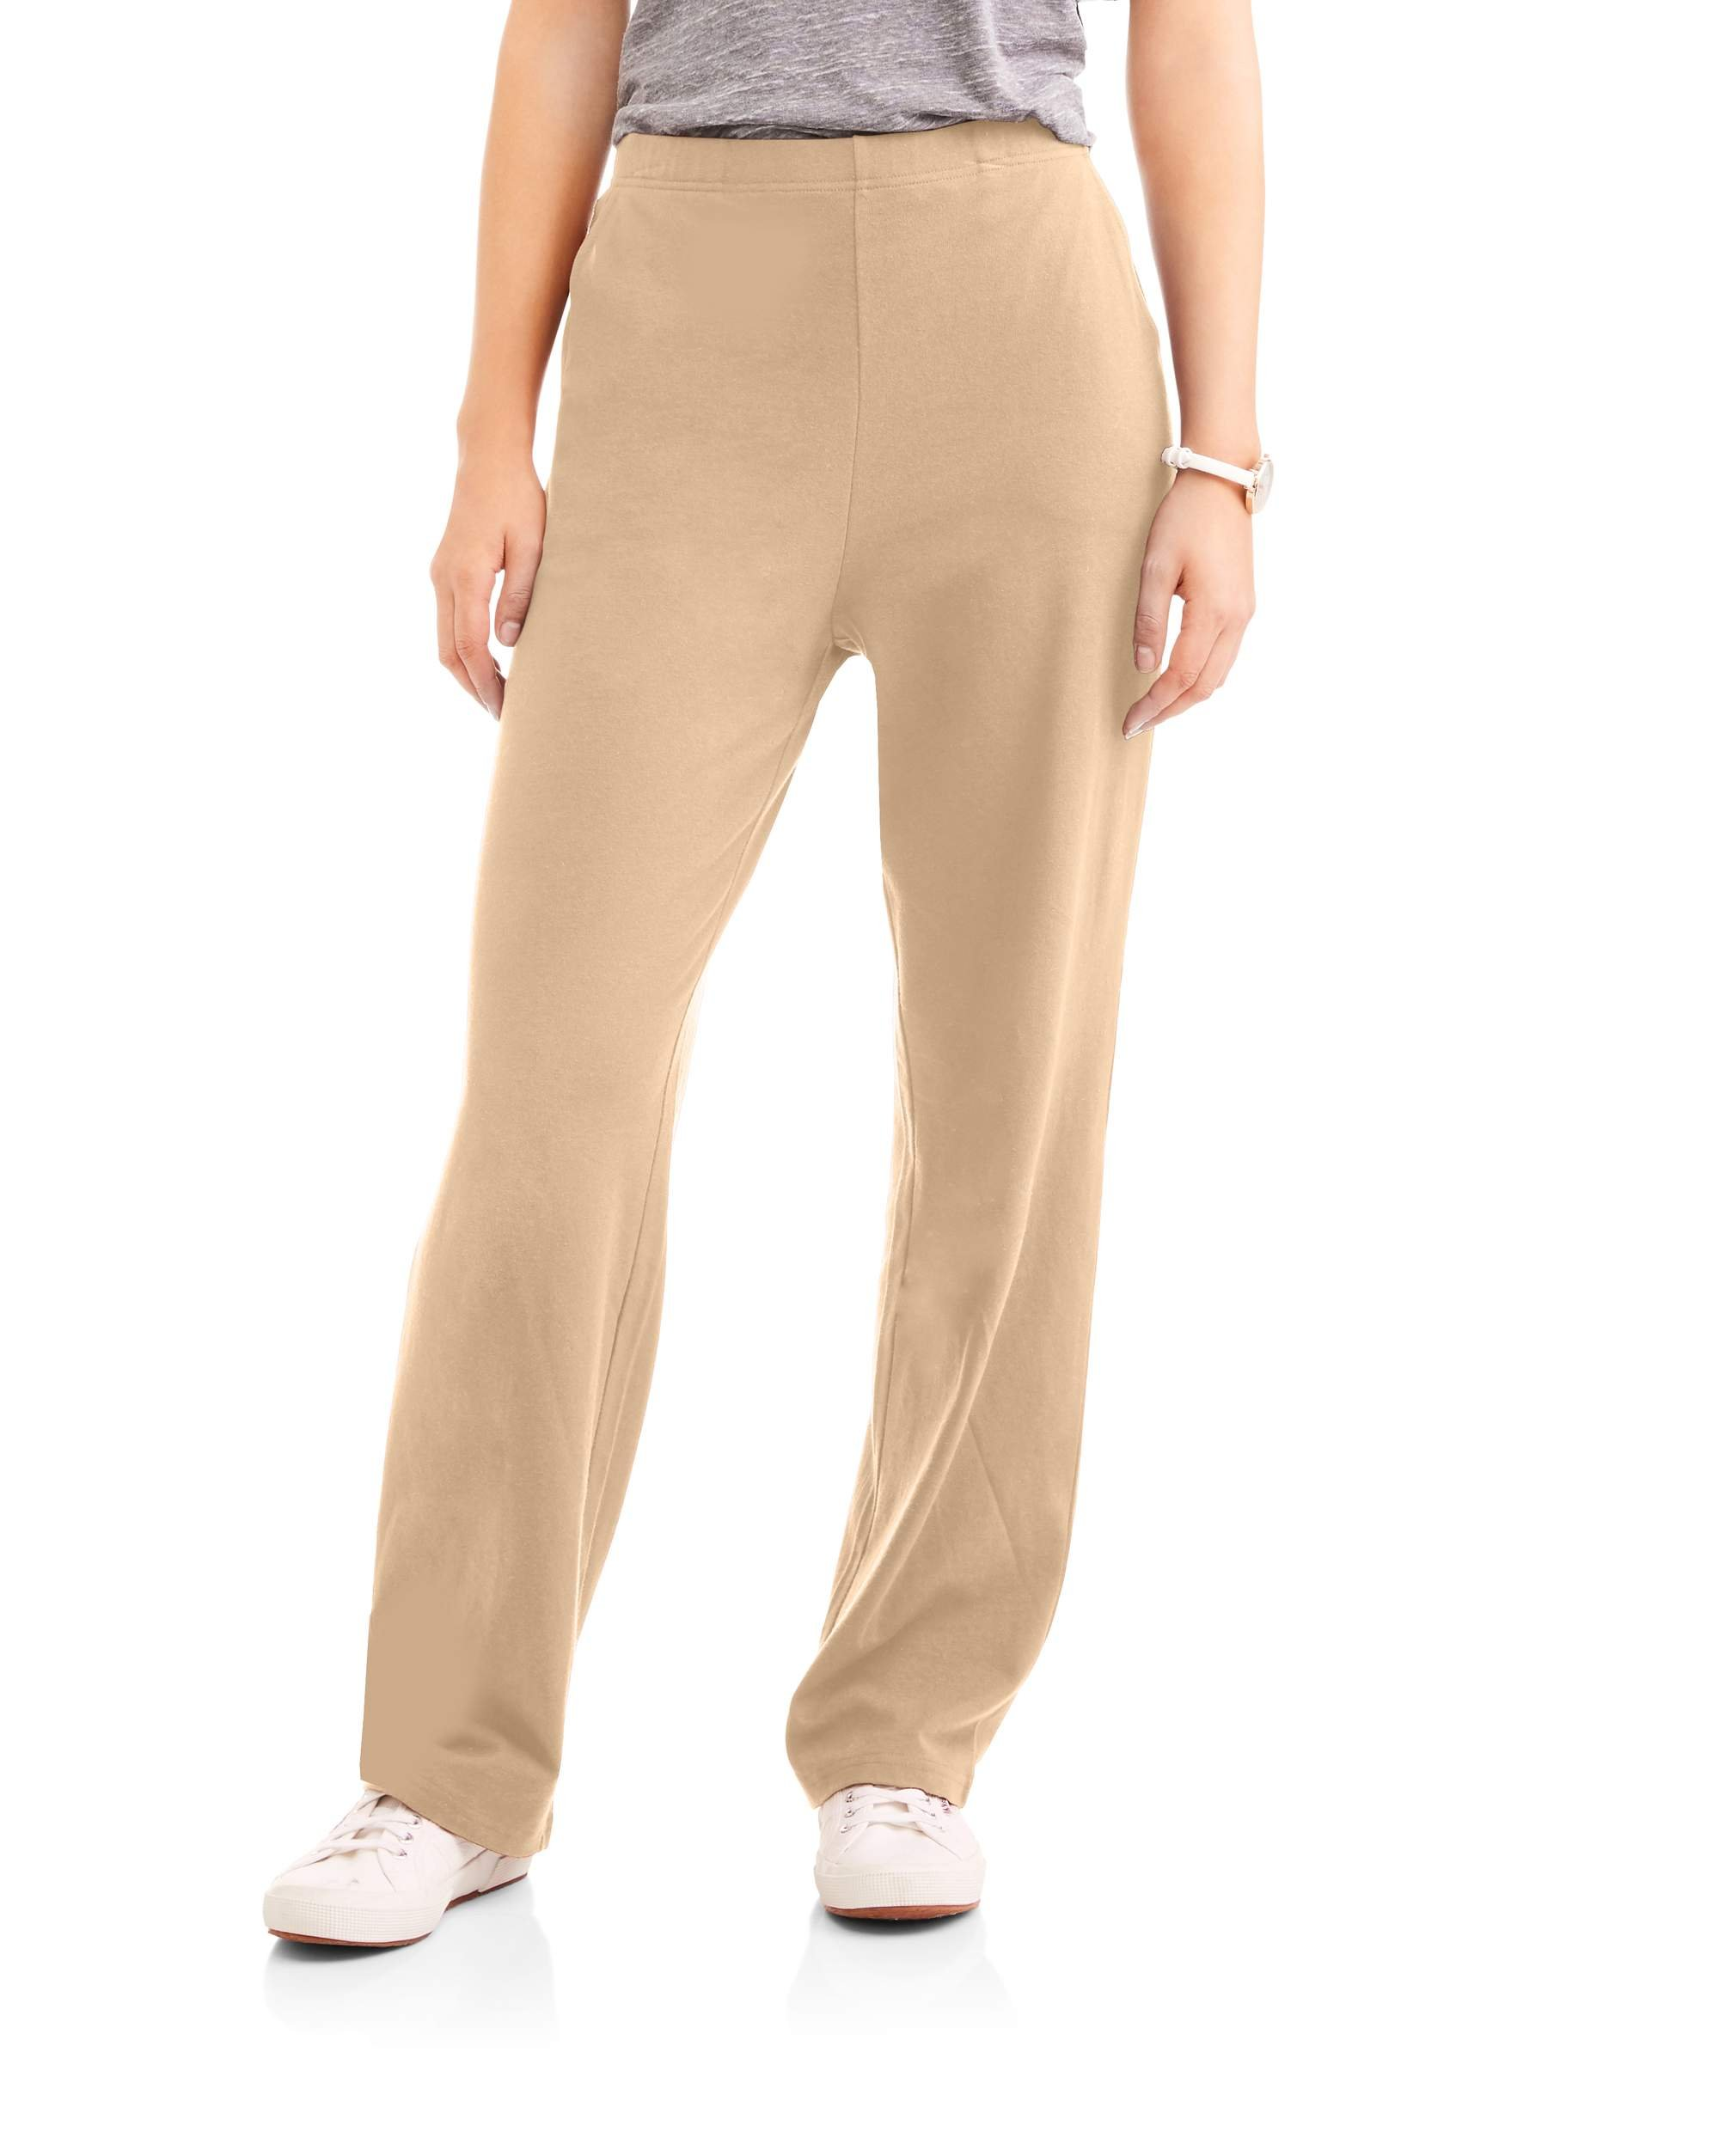 White Stag Women's Knit Pull-On Pants Available In Regular and Petite (Petite X-Large, Urban Khaki)